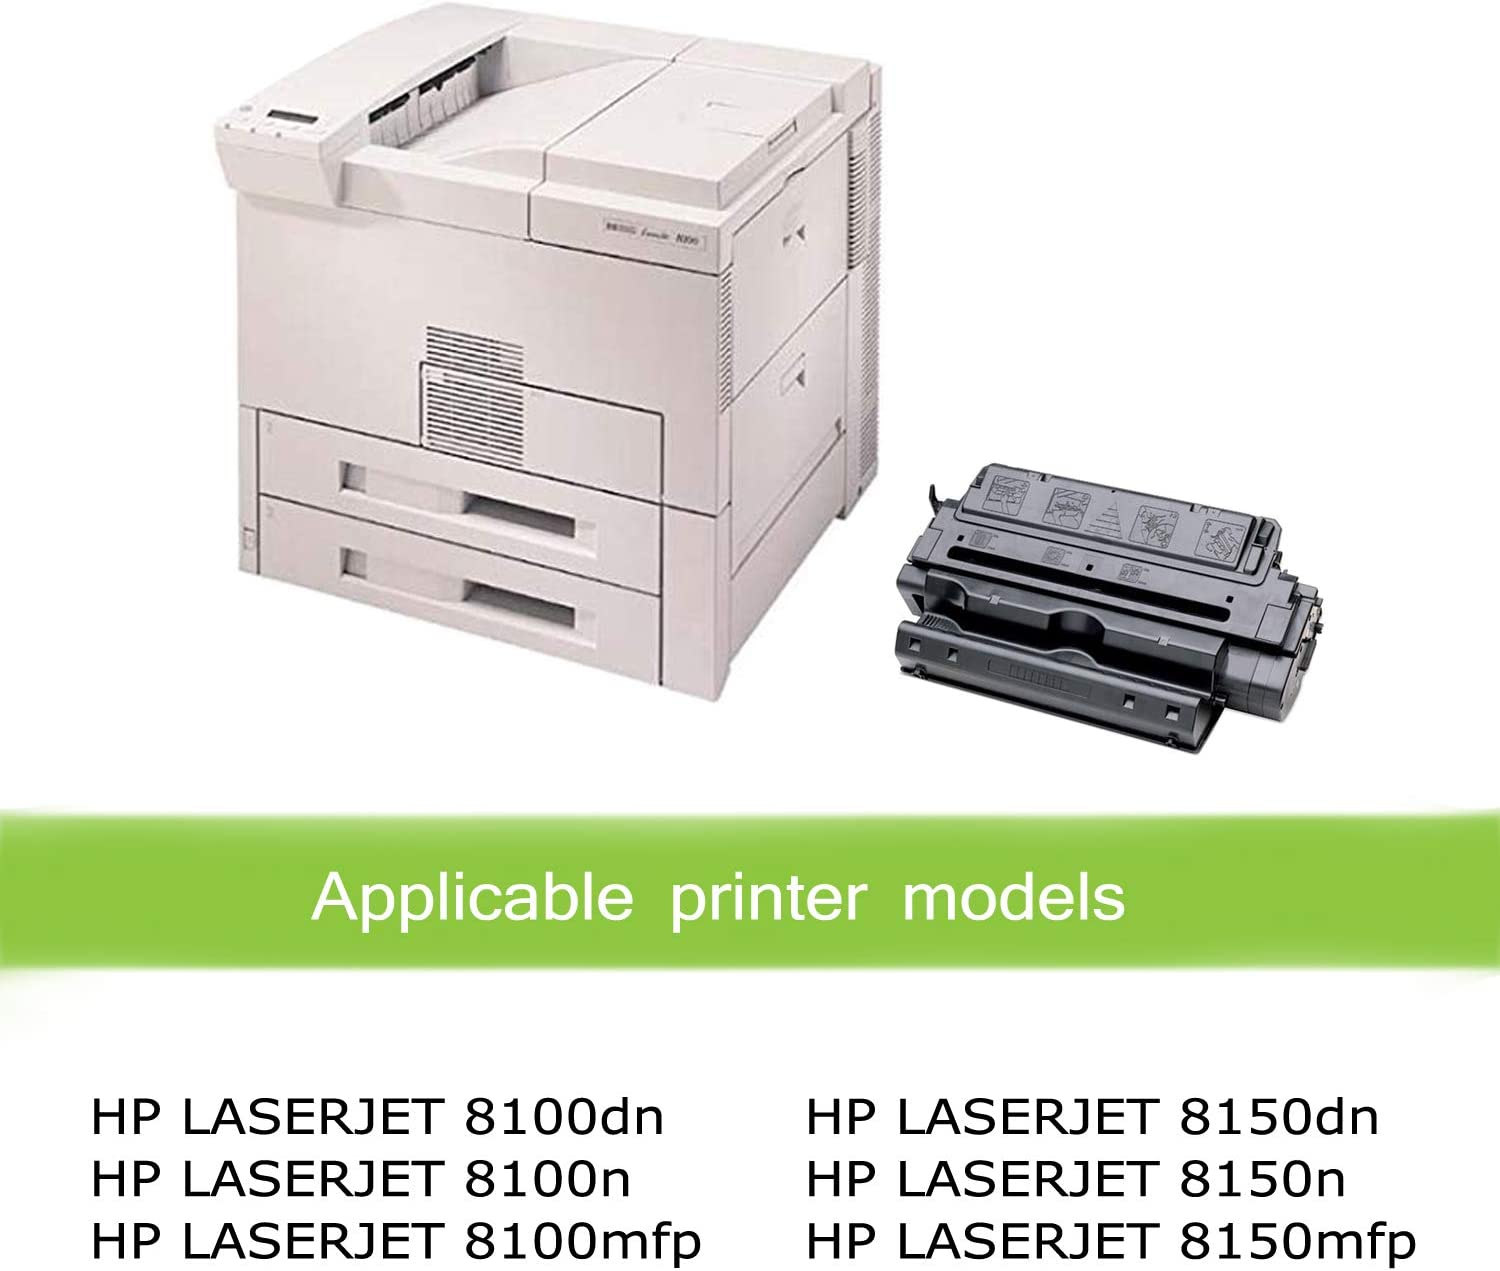 8150n Awesometoner Compatible Toner Cartridge Replacement for HP C4182X MICR use with Laserjet 8100dn 8150dn 8100n Mopier 320 Black, 2-Pack